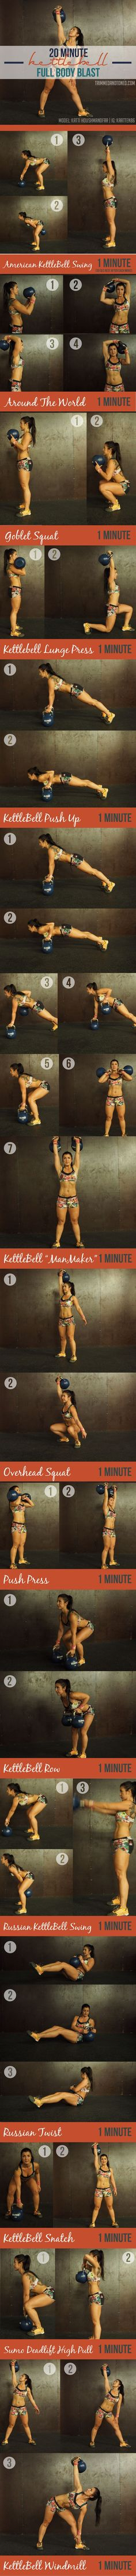 20 Minute Full Body Fat Loss Kettlebell Workout Circuit! Find more like this at gympins.com #kettlebell | Repinned www.pinterest.com/muskelfarm/ #LossWeight